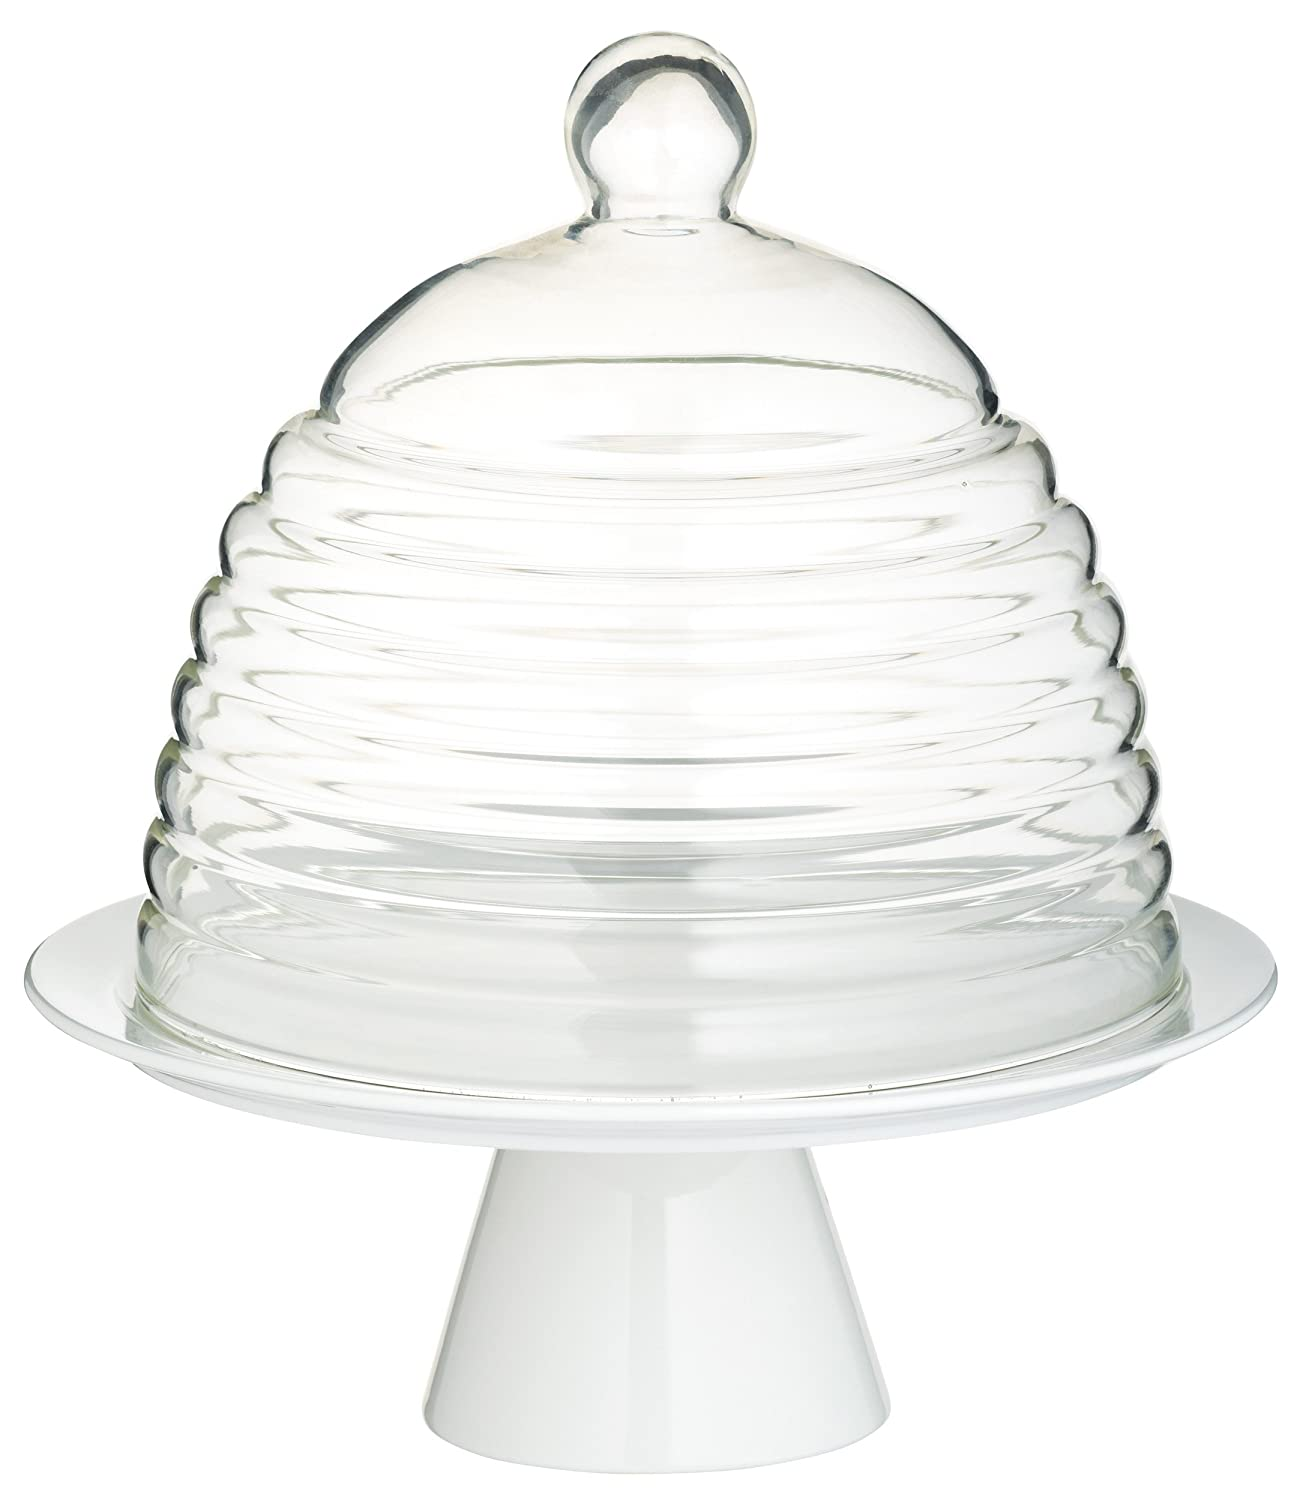 concept martha isotria cake for uncategorized pict dome stewart with stand files pedestal and appealing domed trend